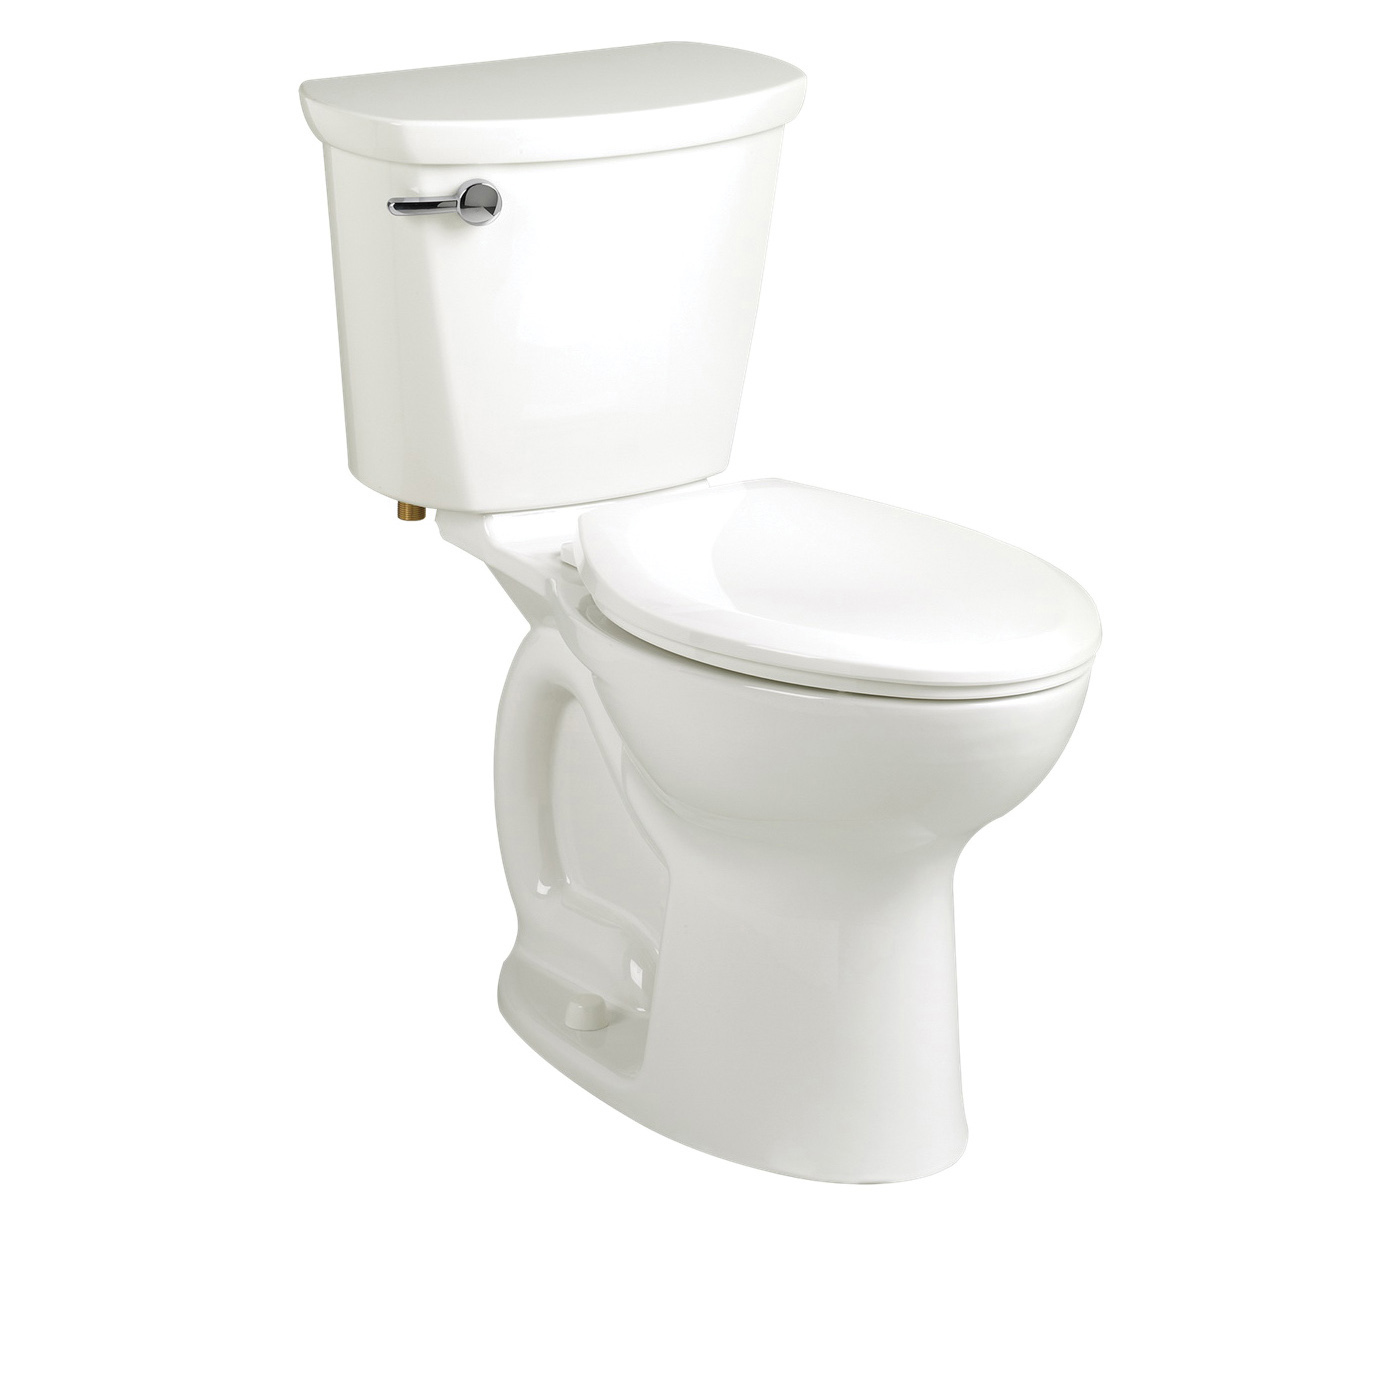 American Standard 215BA104.020 Cadet® Pro™ Right Height™ 2-Piece Toilet, Round Front Bowl, 16-1/2 in H Rim, 1.28 gpf, White, Import